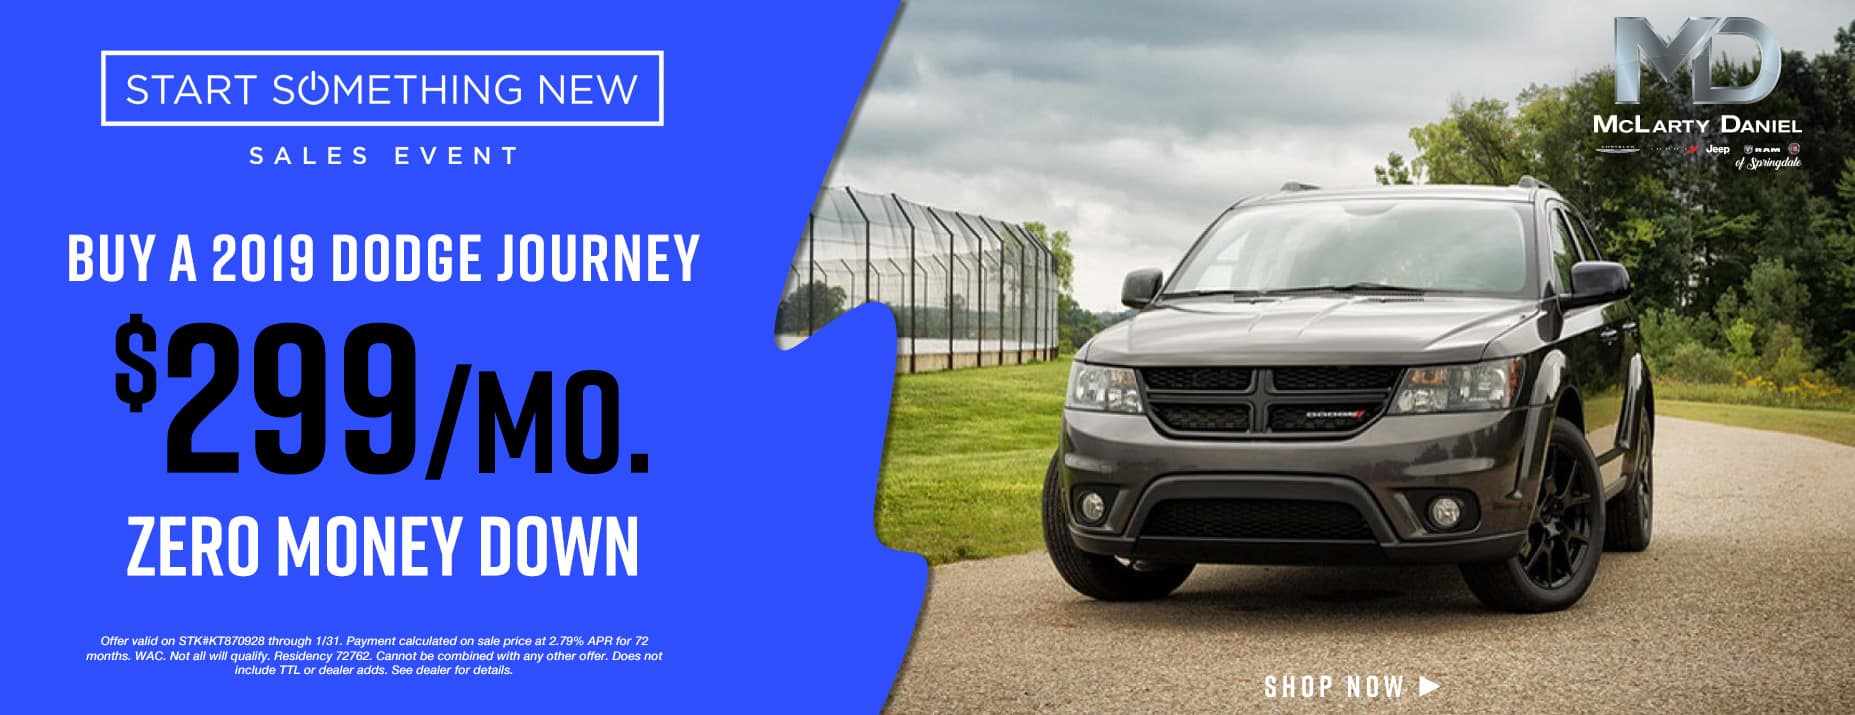 Buy a2019Dodge Journeyfor only$299/mo with no money down!